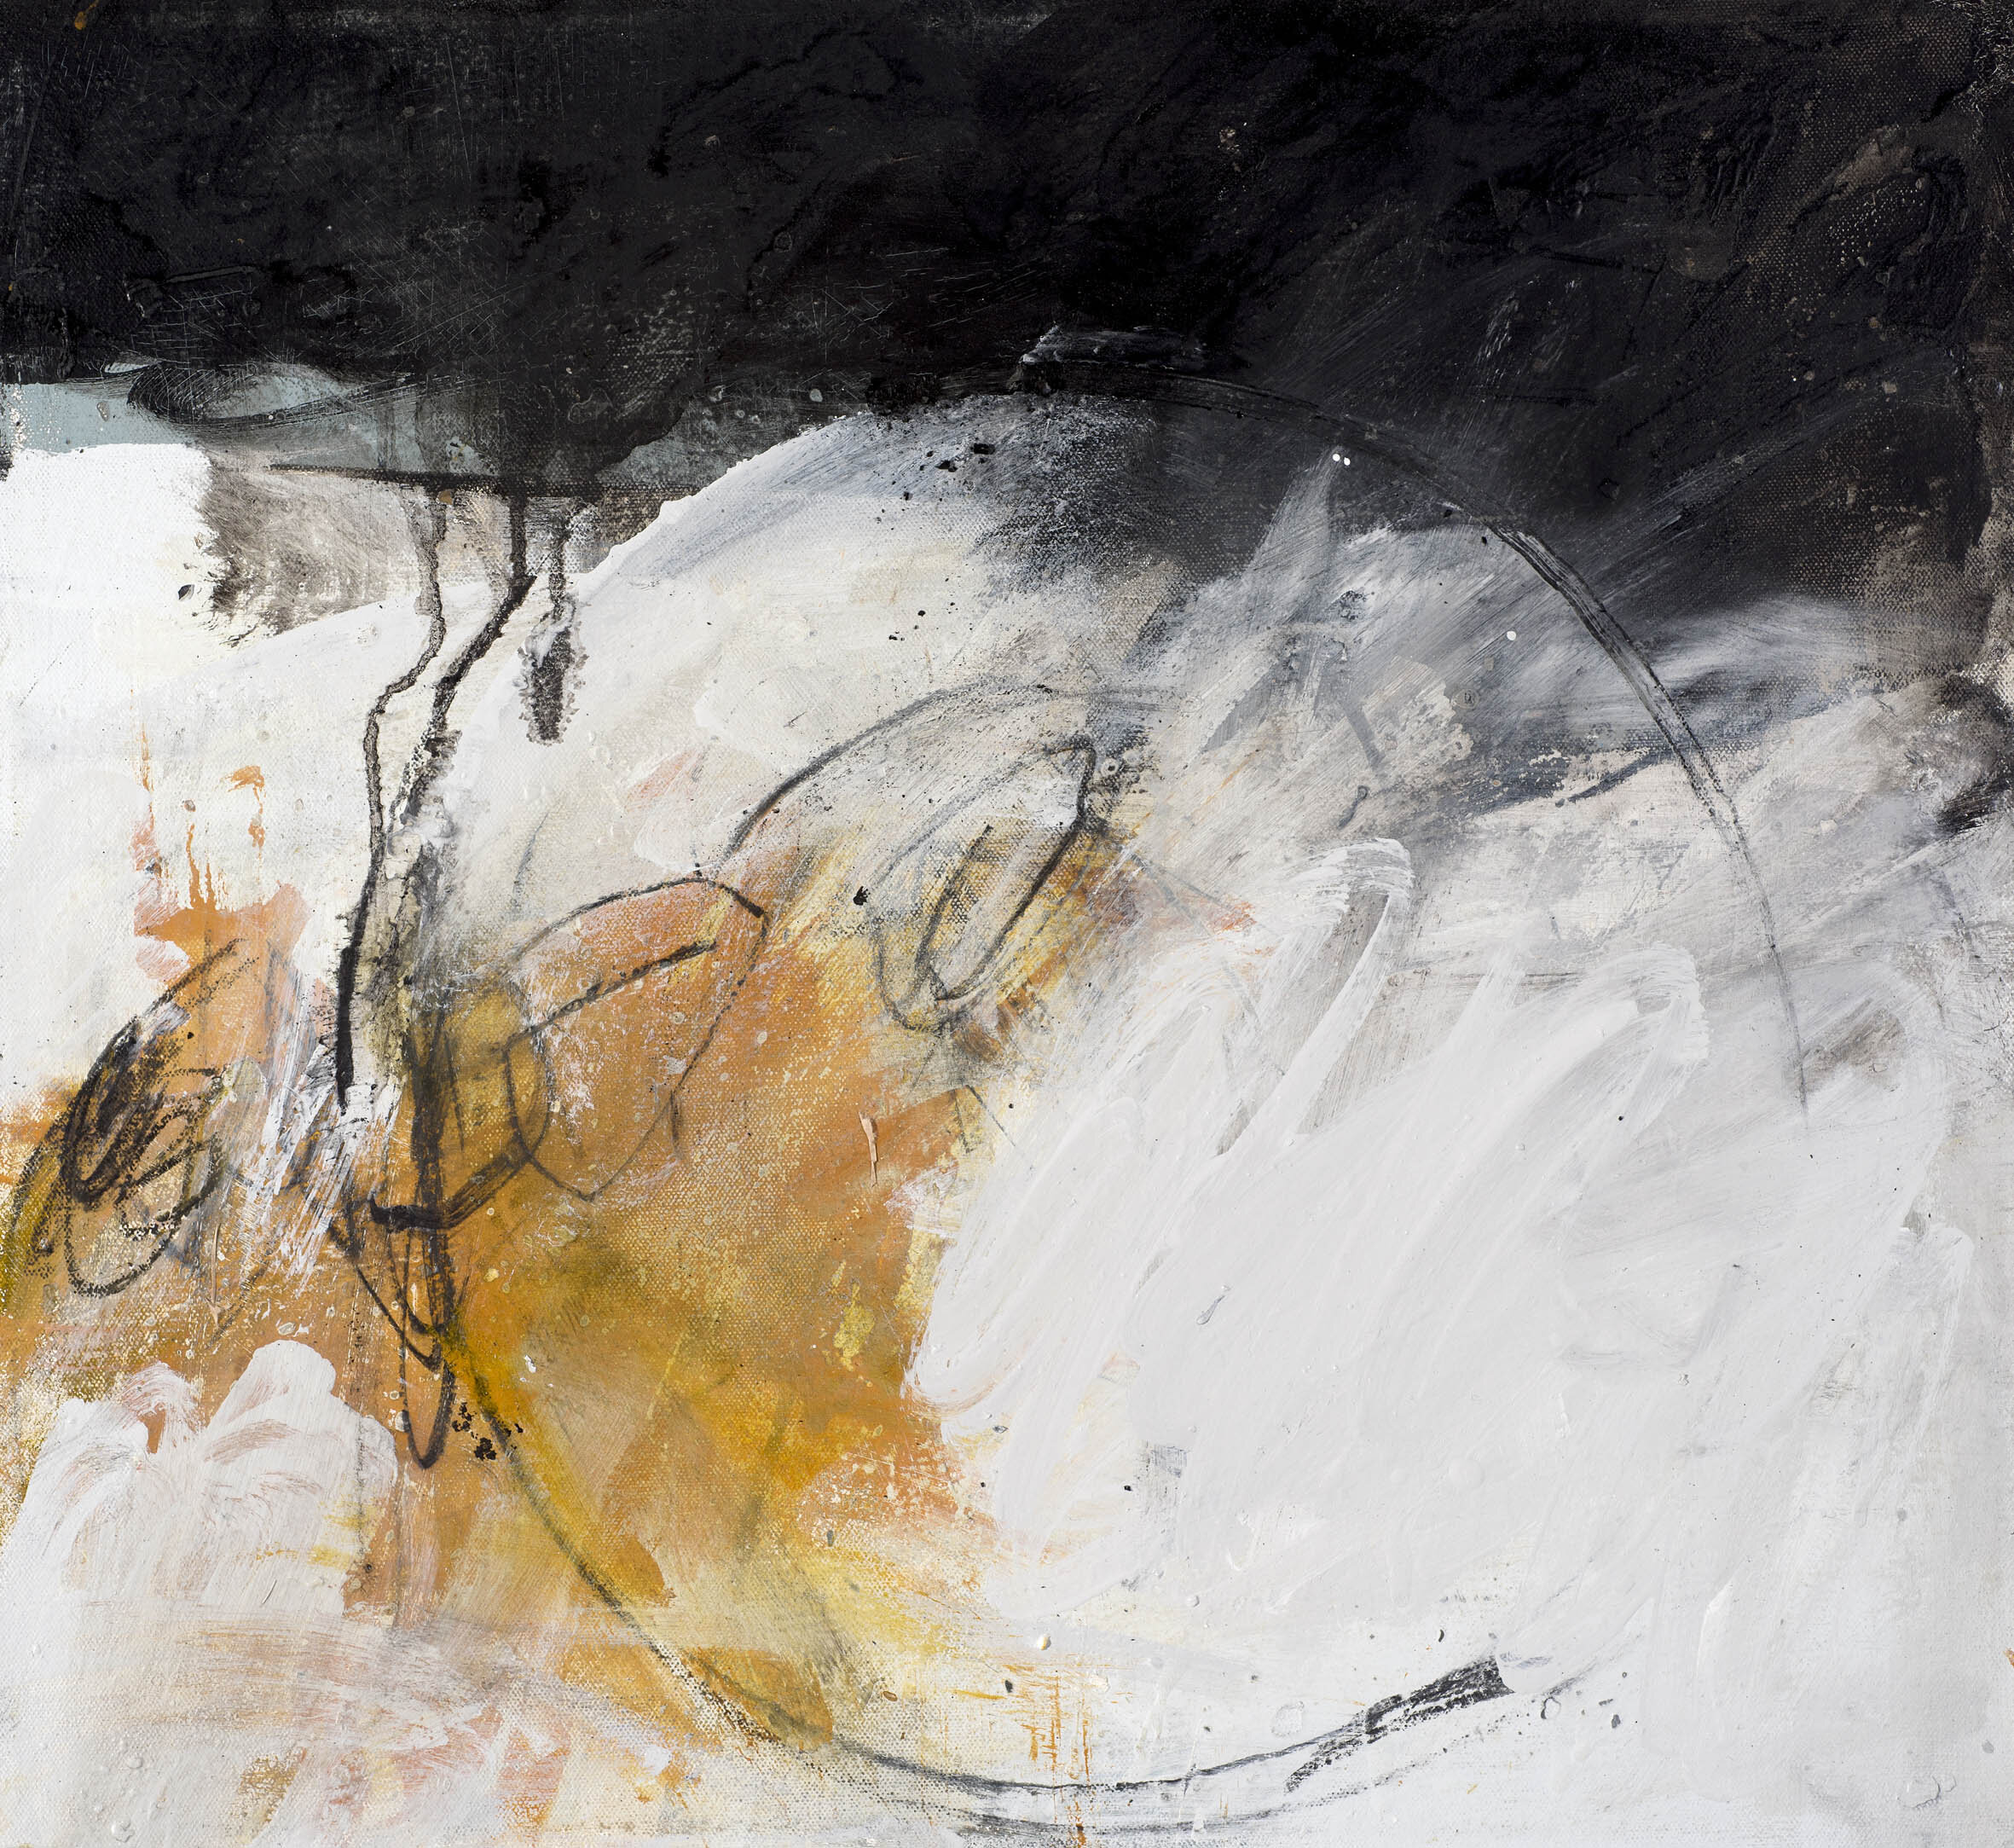 Day Bowman_Flood and Ebb 7_oil and charcoal on canvas_45 x 50 x 3  cm_DSC_7411.jpg